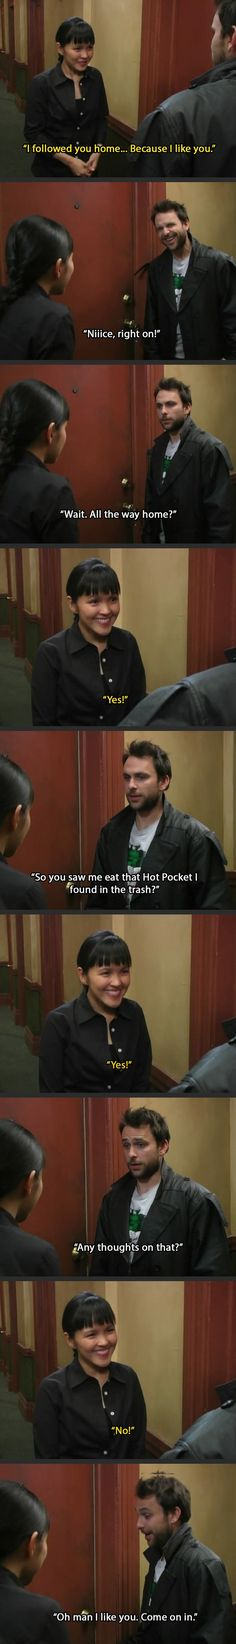 freaking charlie day. i love him